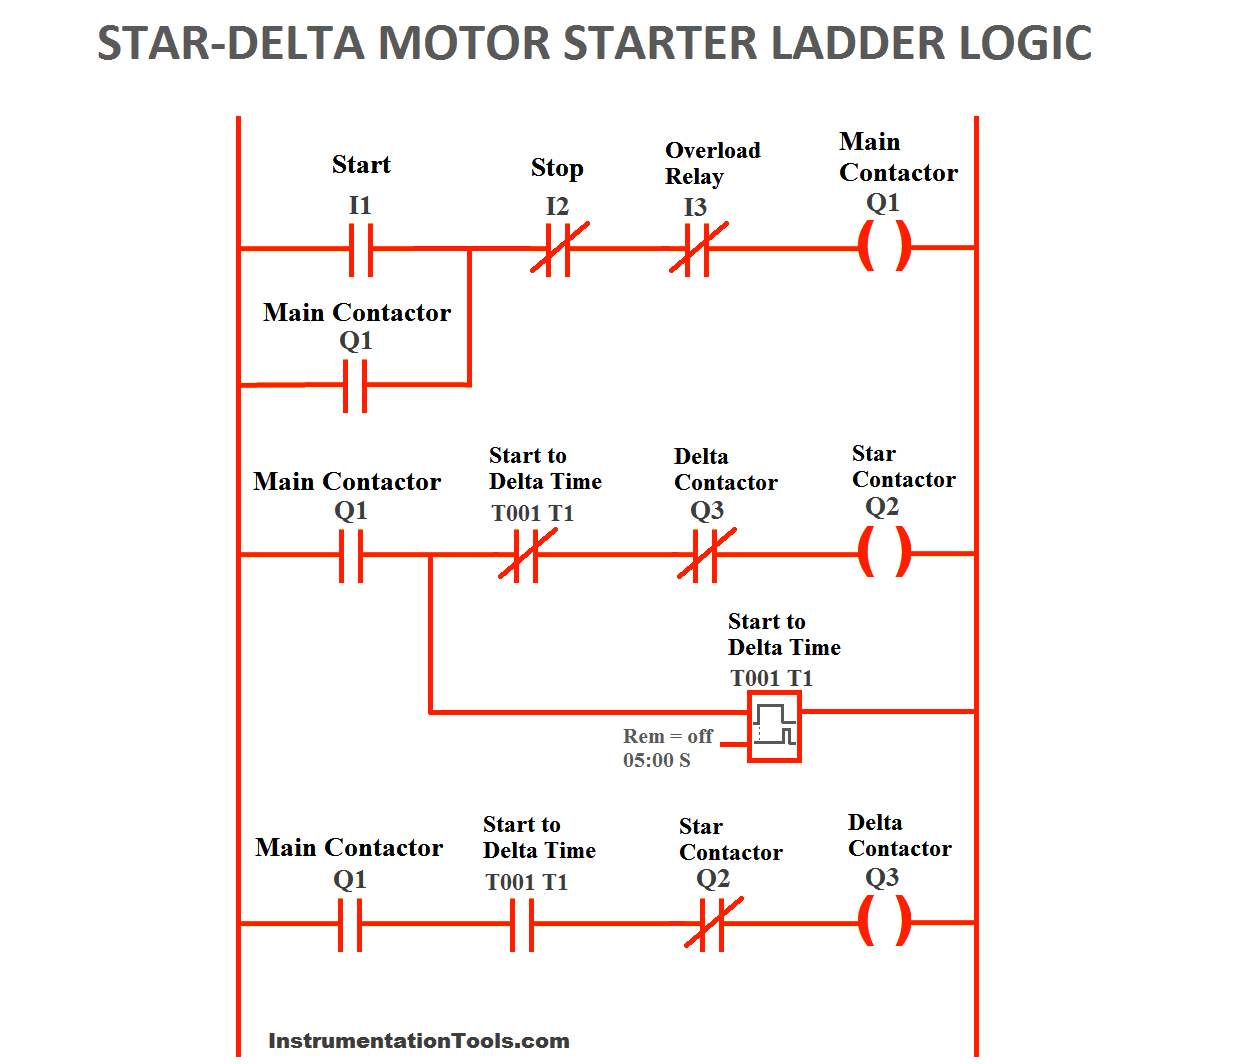 Wiring Plc Ladder Diagram Library Star Delta Control Motor Logic